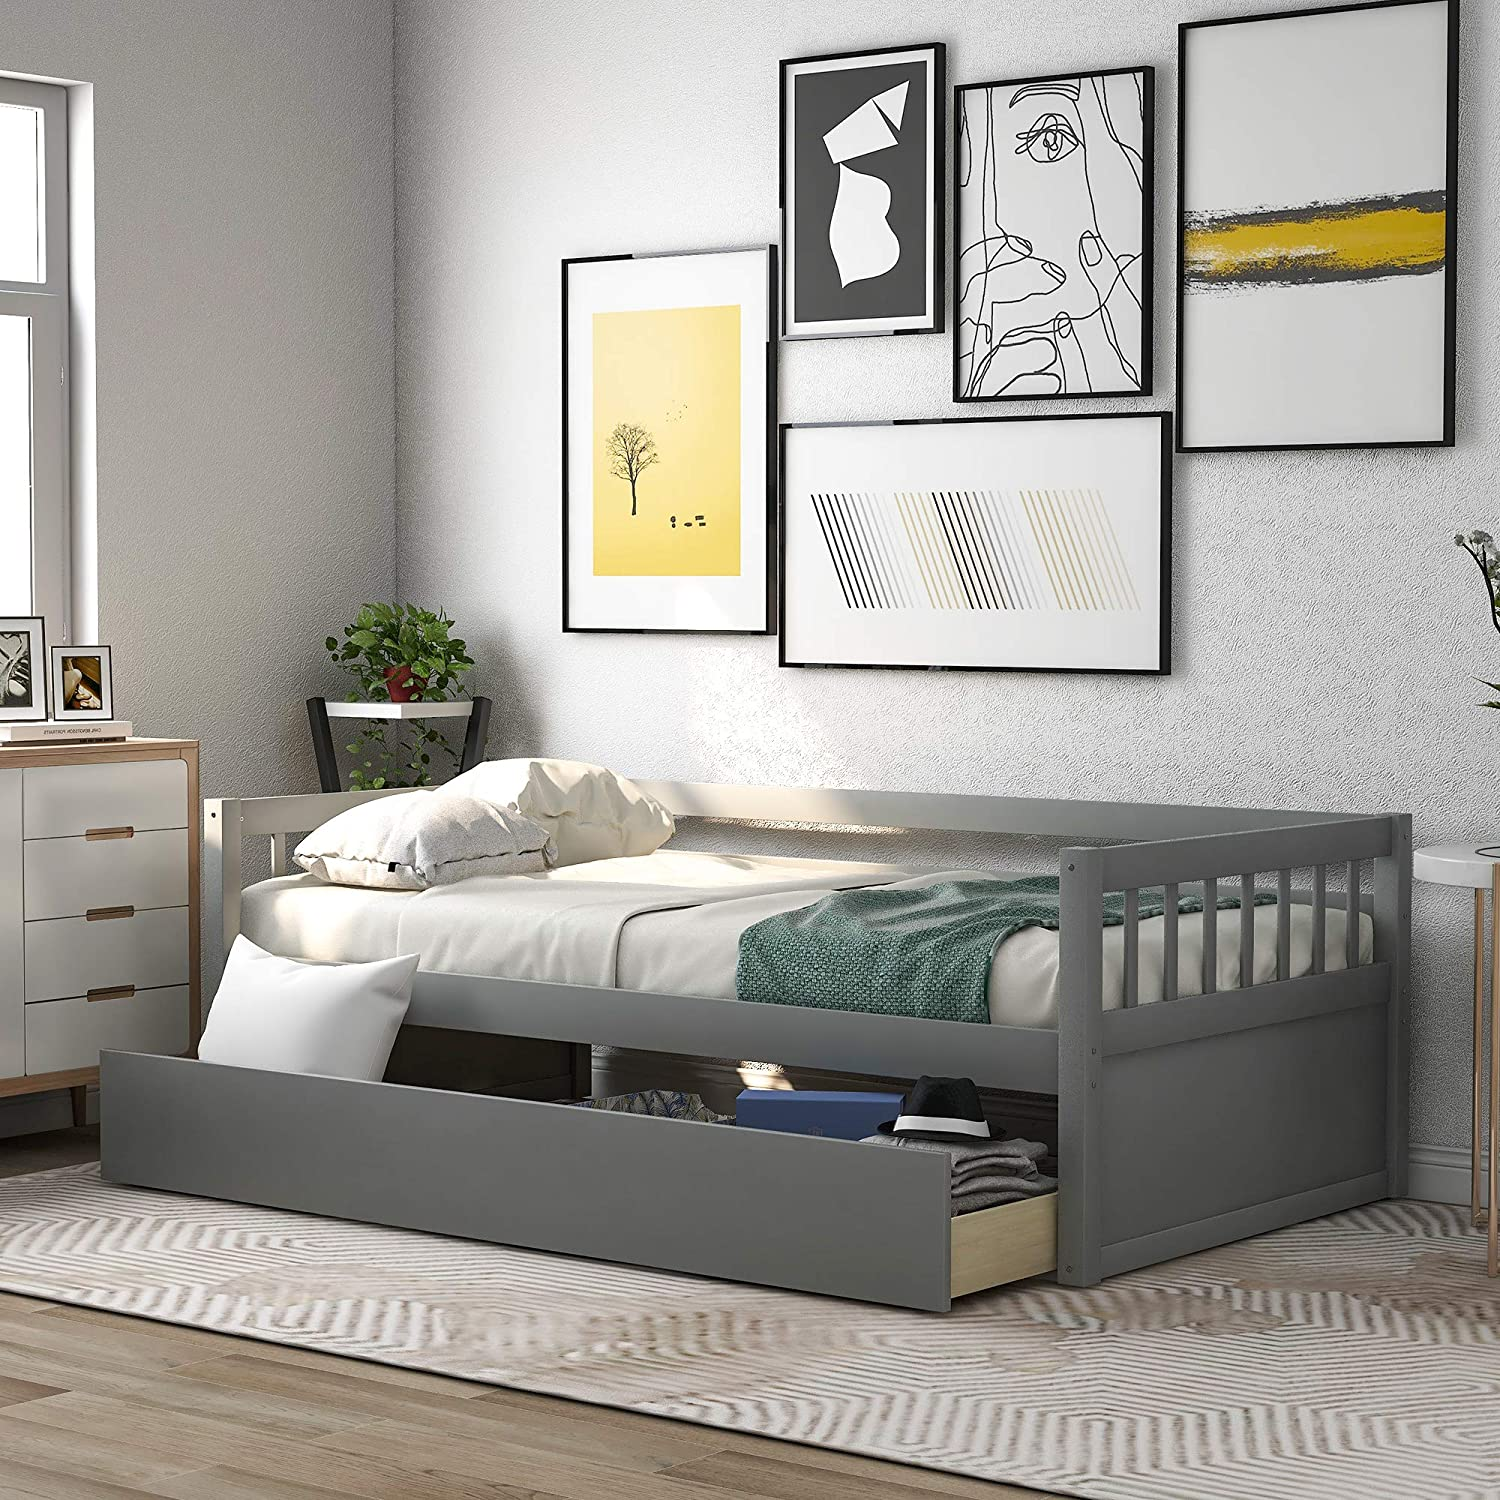 Twin Daybed with Storage Drawer depot 250lbs Capacity Rapid rise x 76